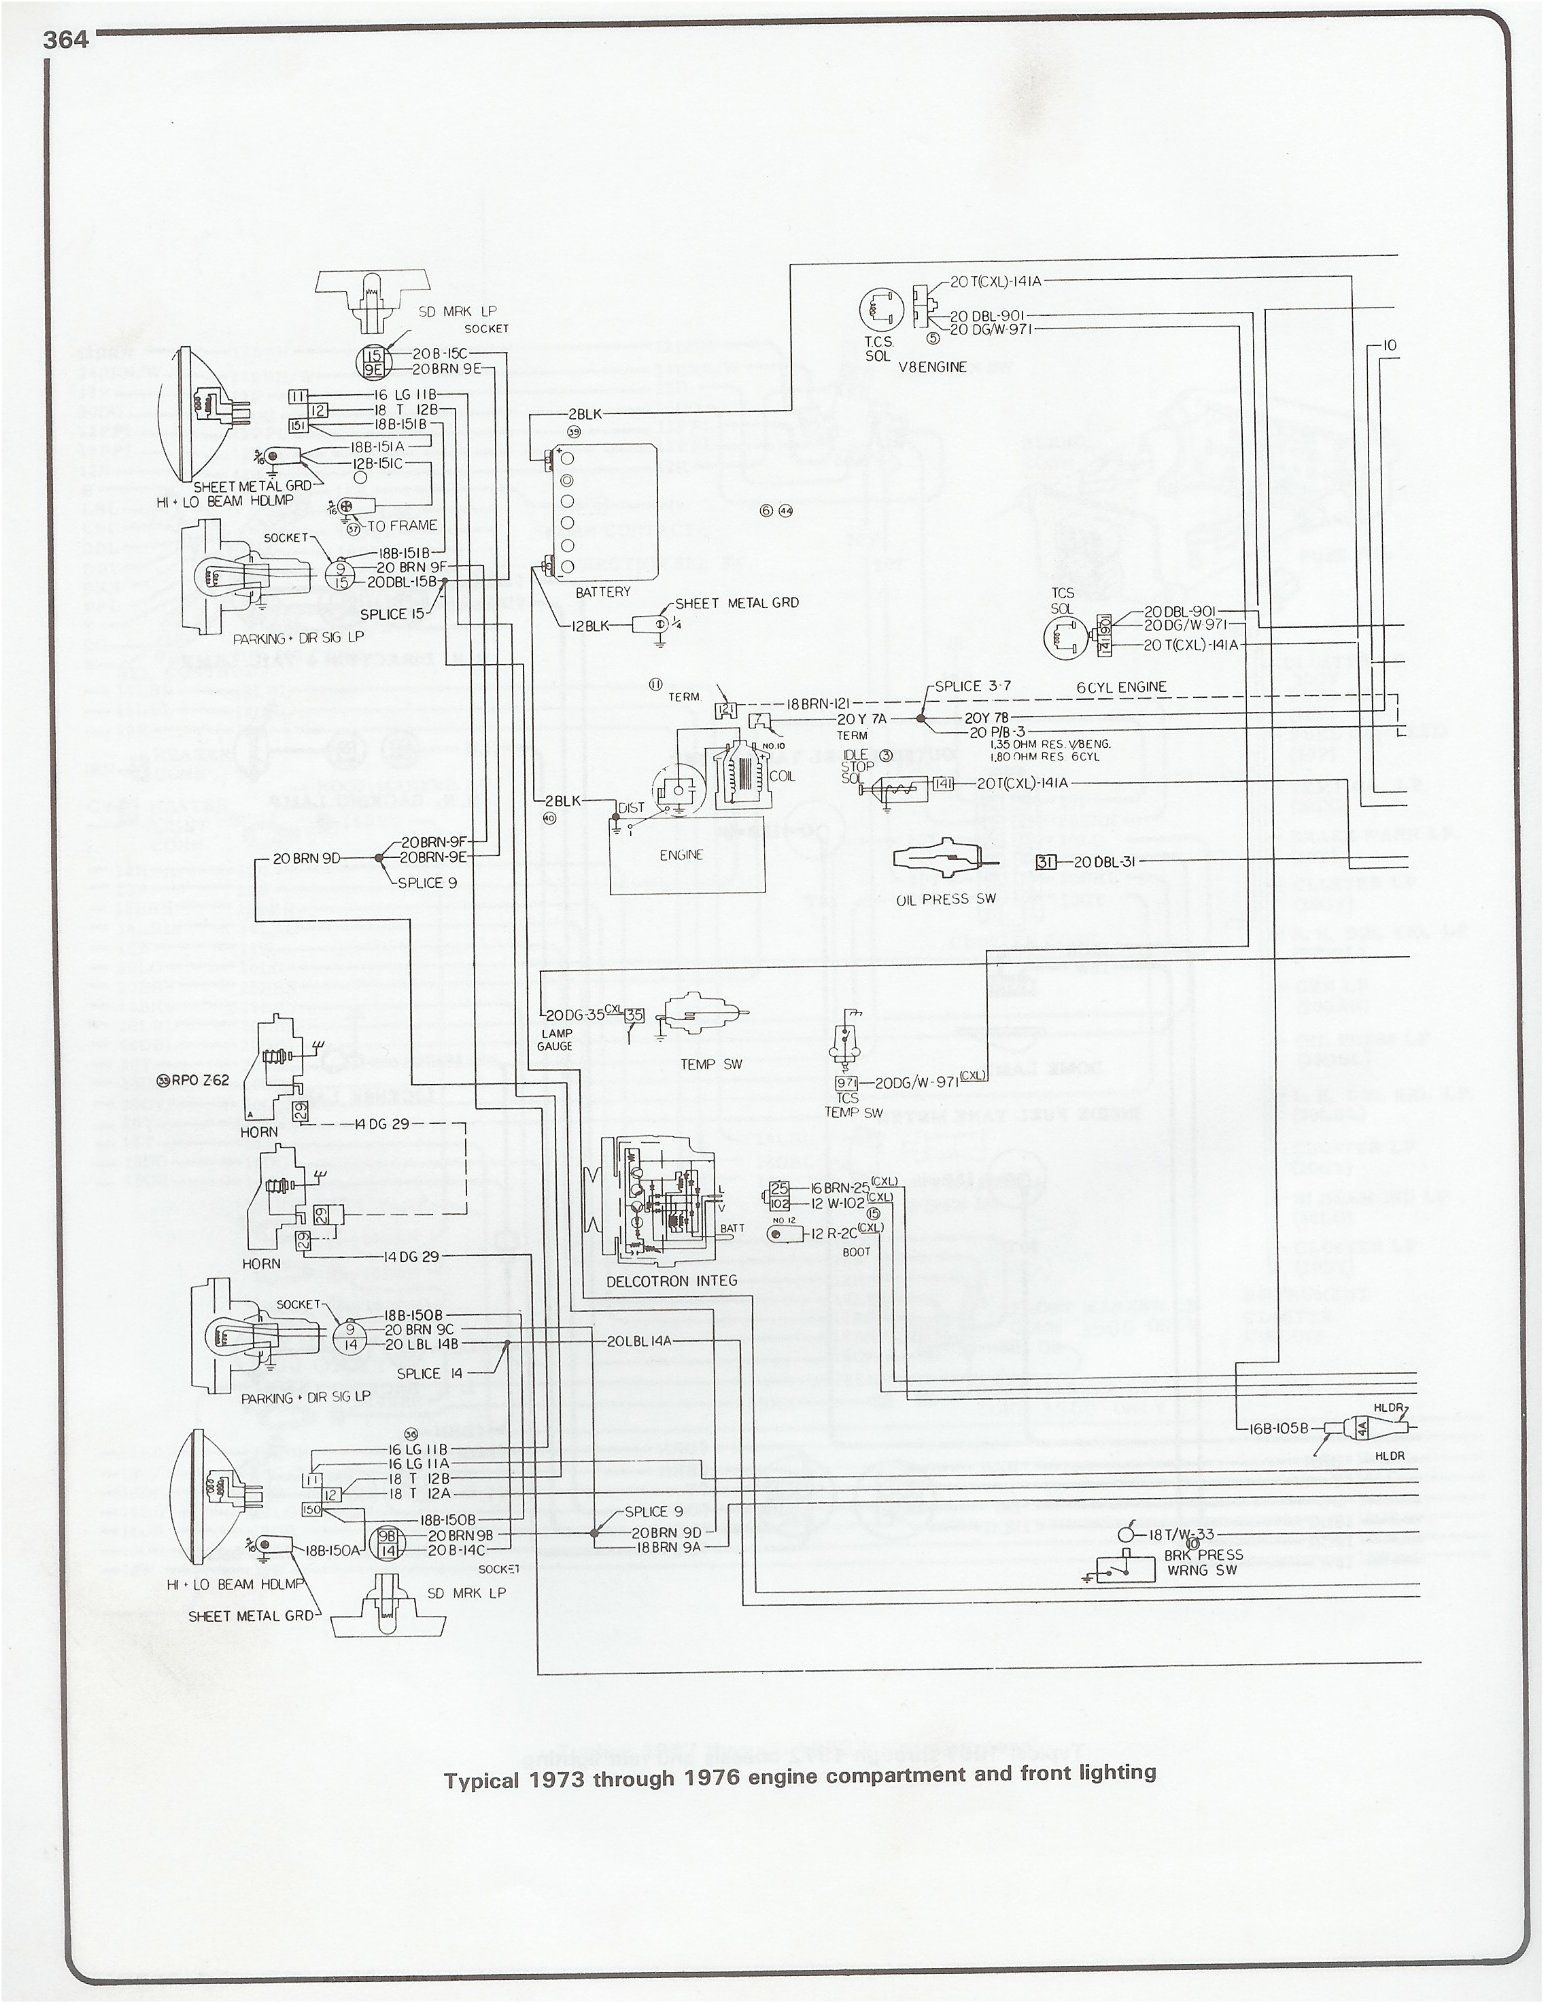 Wiring Diagram 1973 1976 Chevy Pickup Chevy Wiring Diagram 1994 Chevy Fuse  Box Diagram 1973 Chevy Fuse Box Diagrams